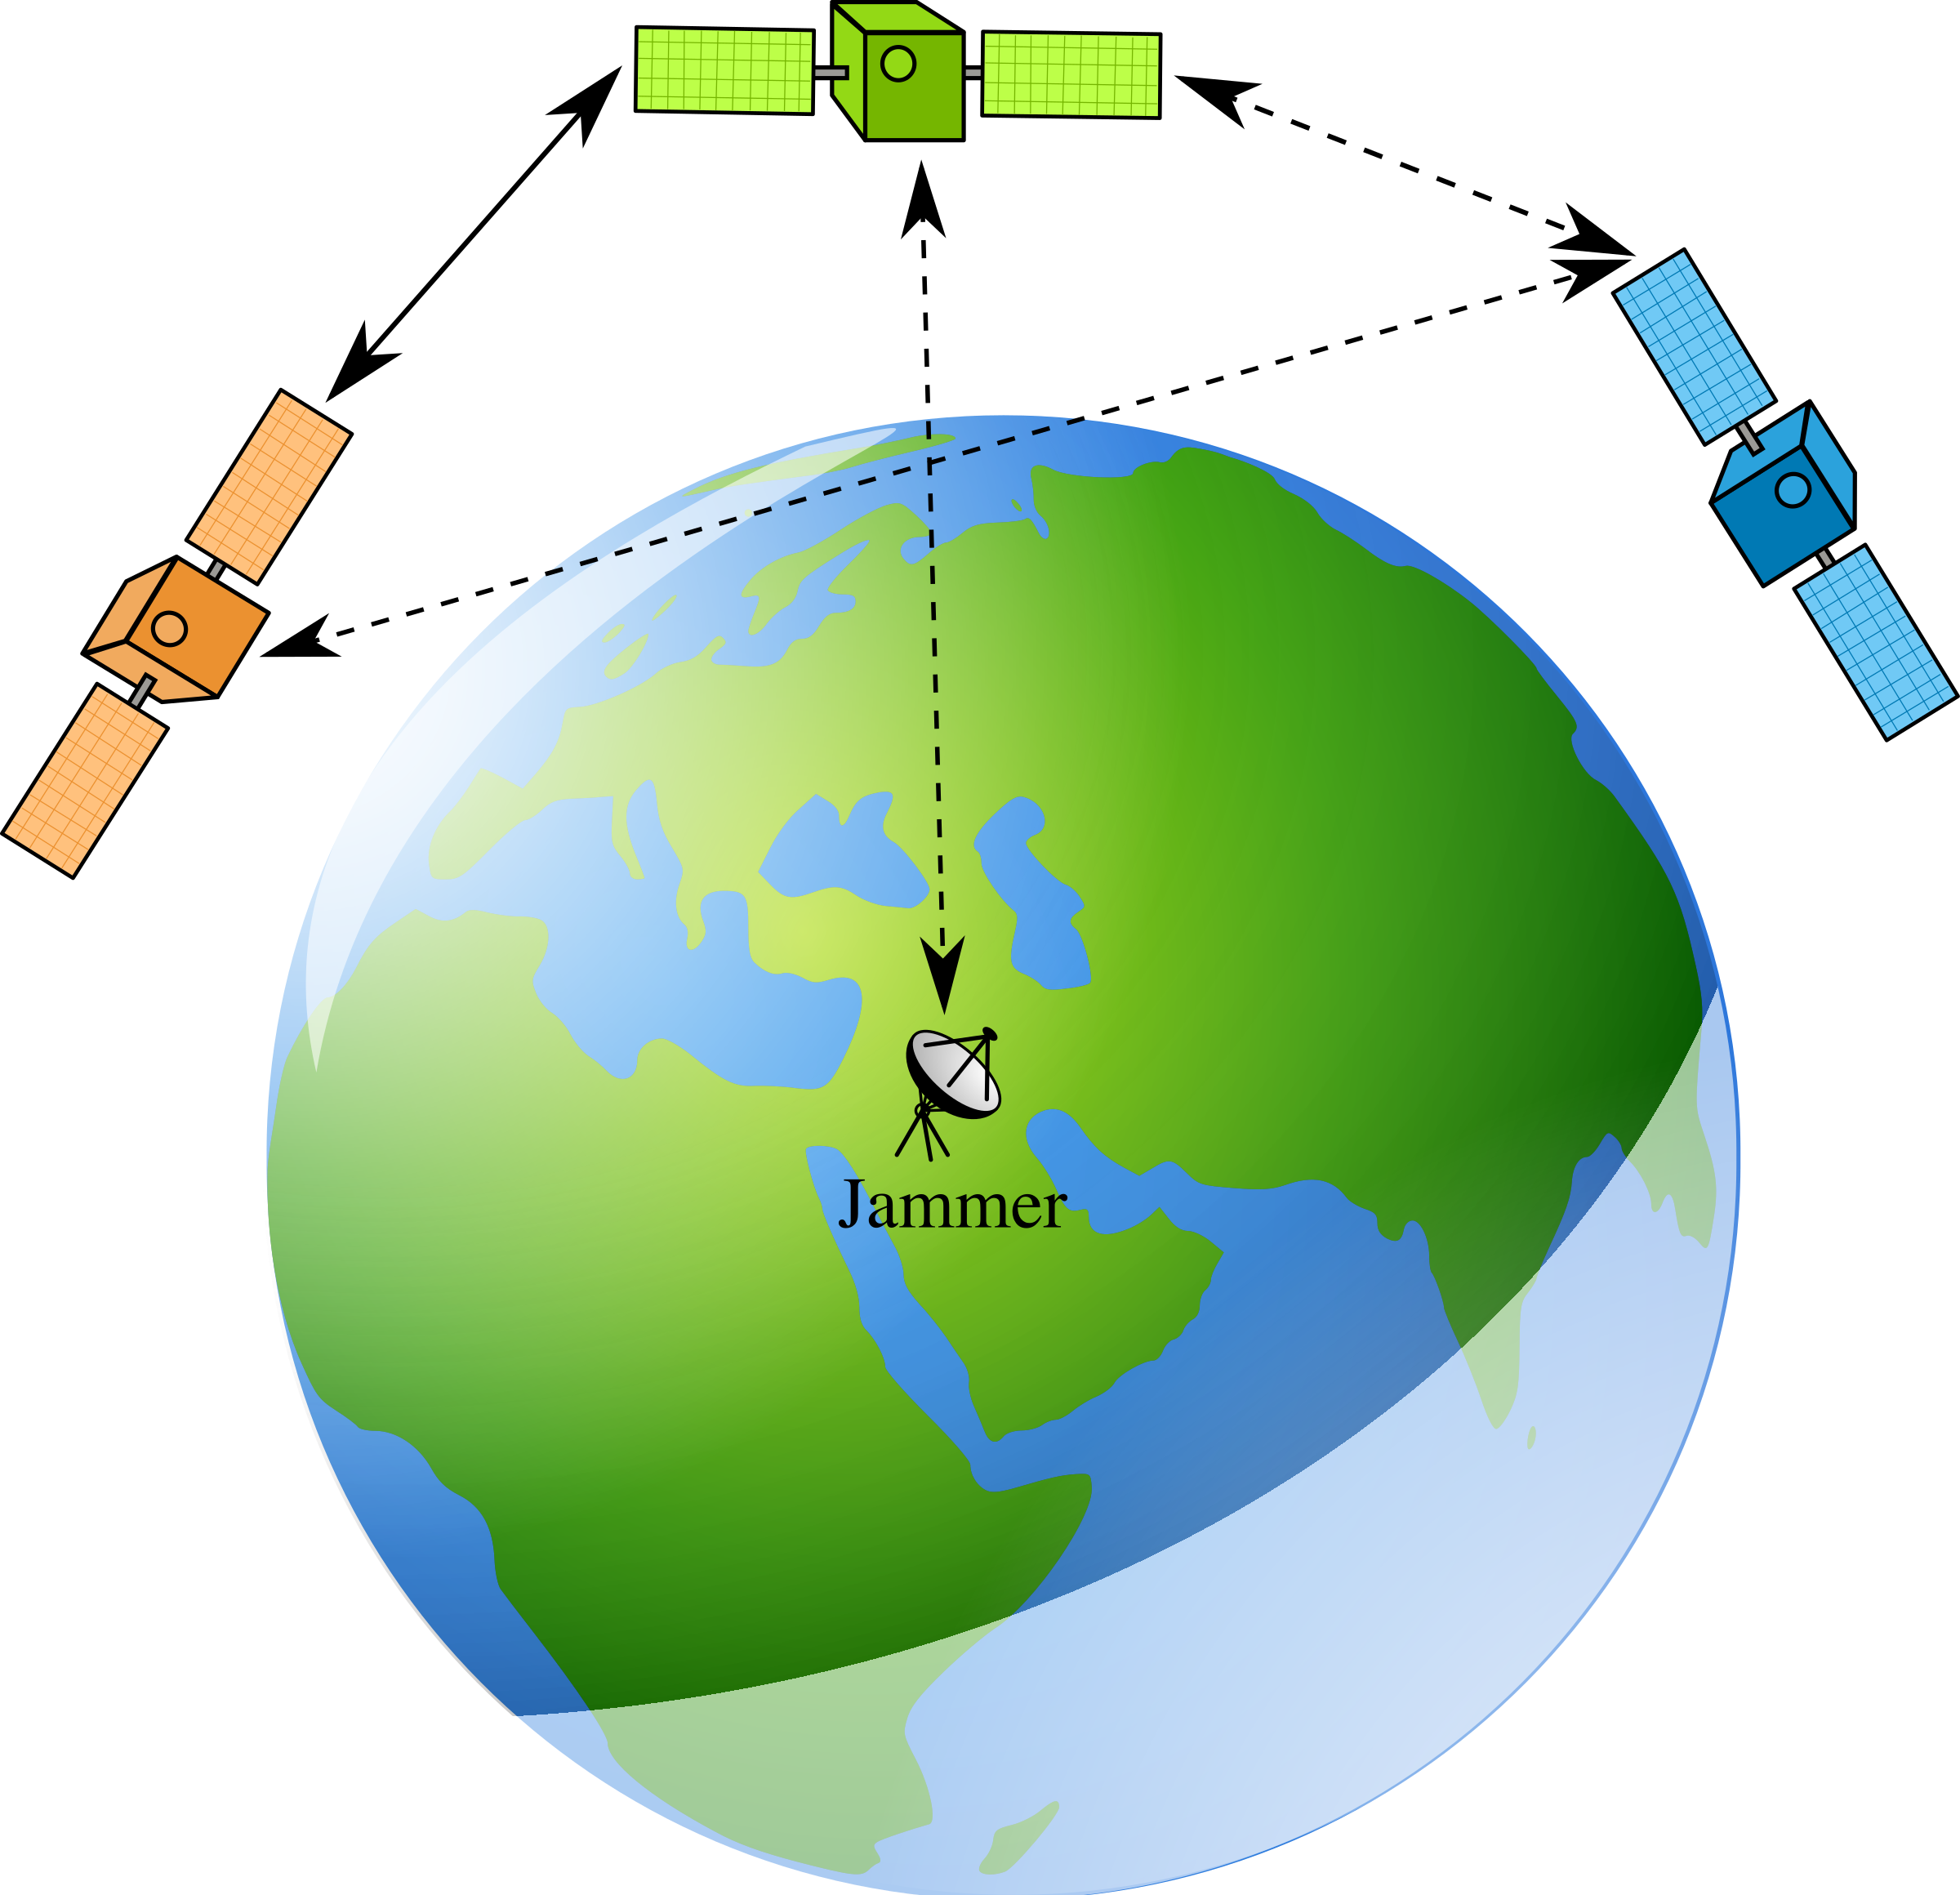 Inter satellite communication by zinka